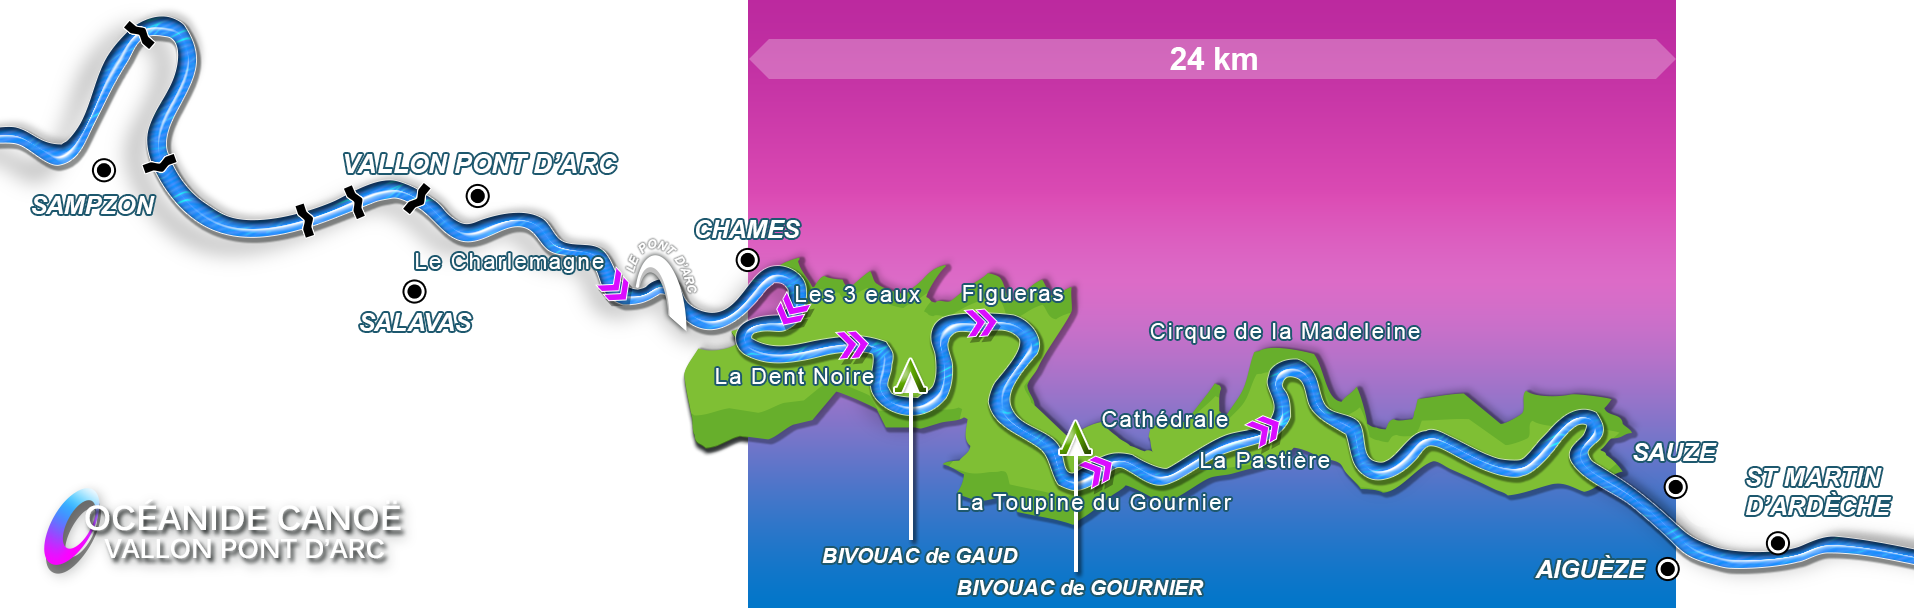 Descent map 24 km